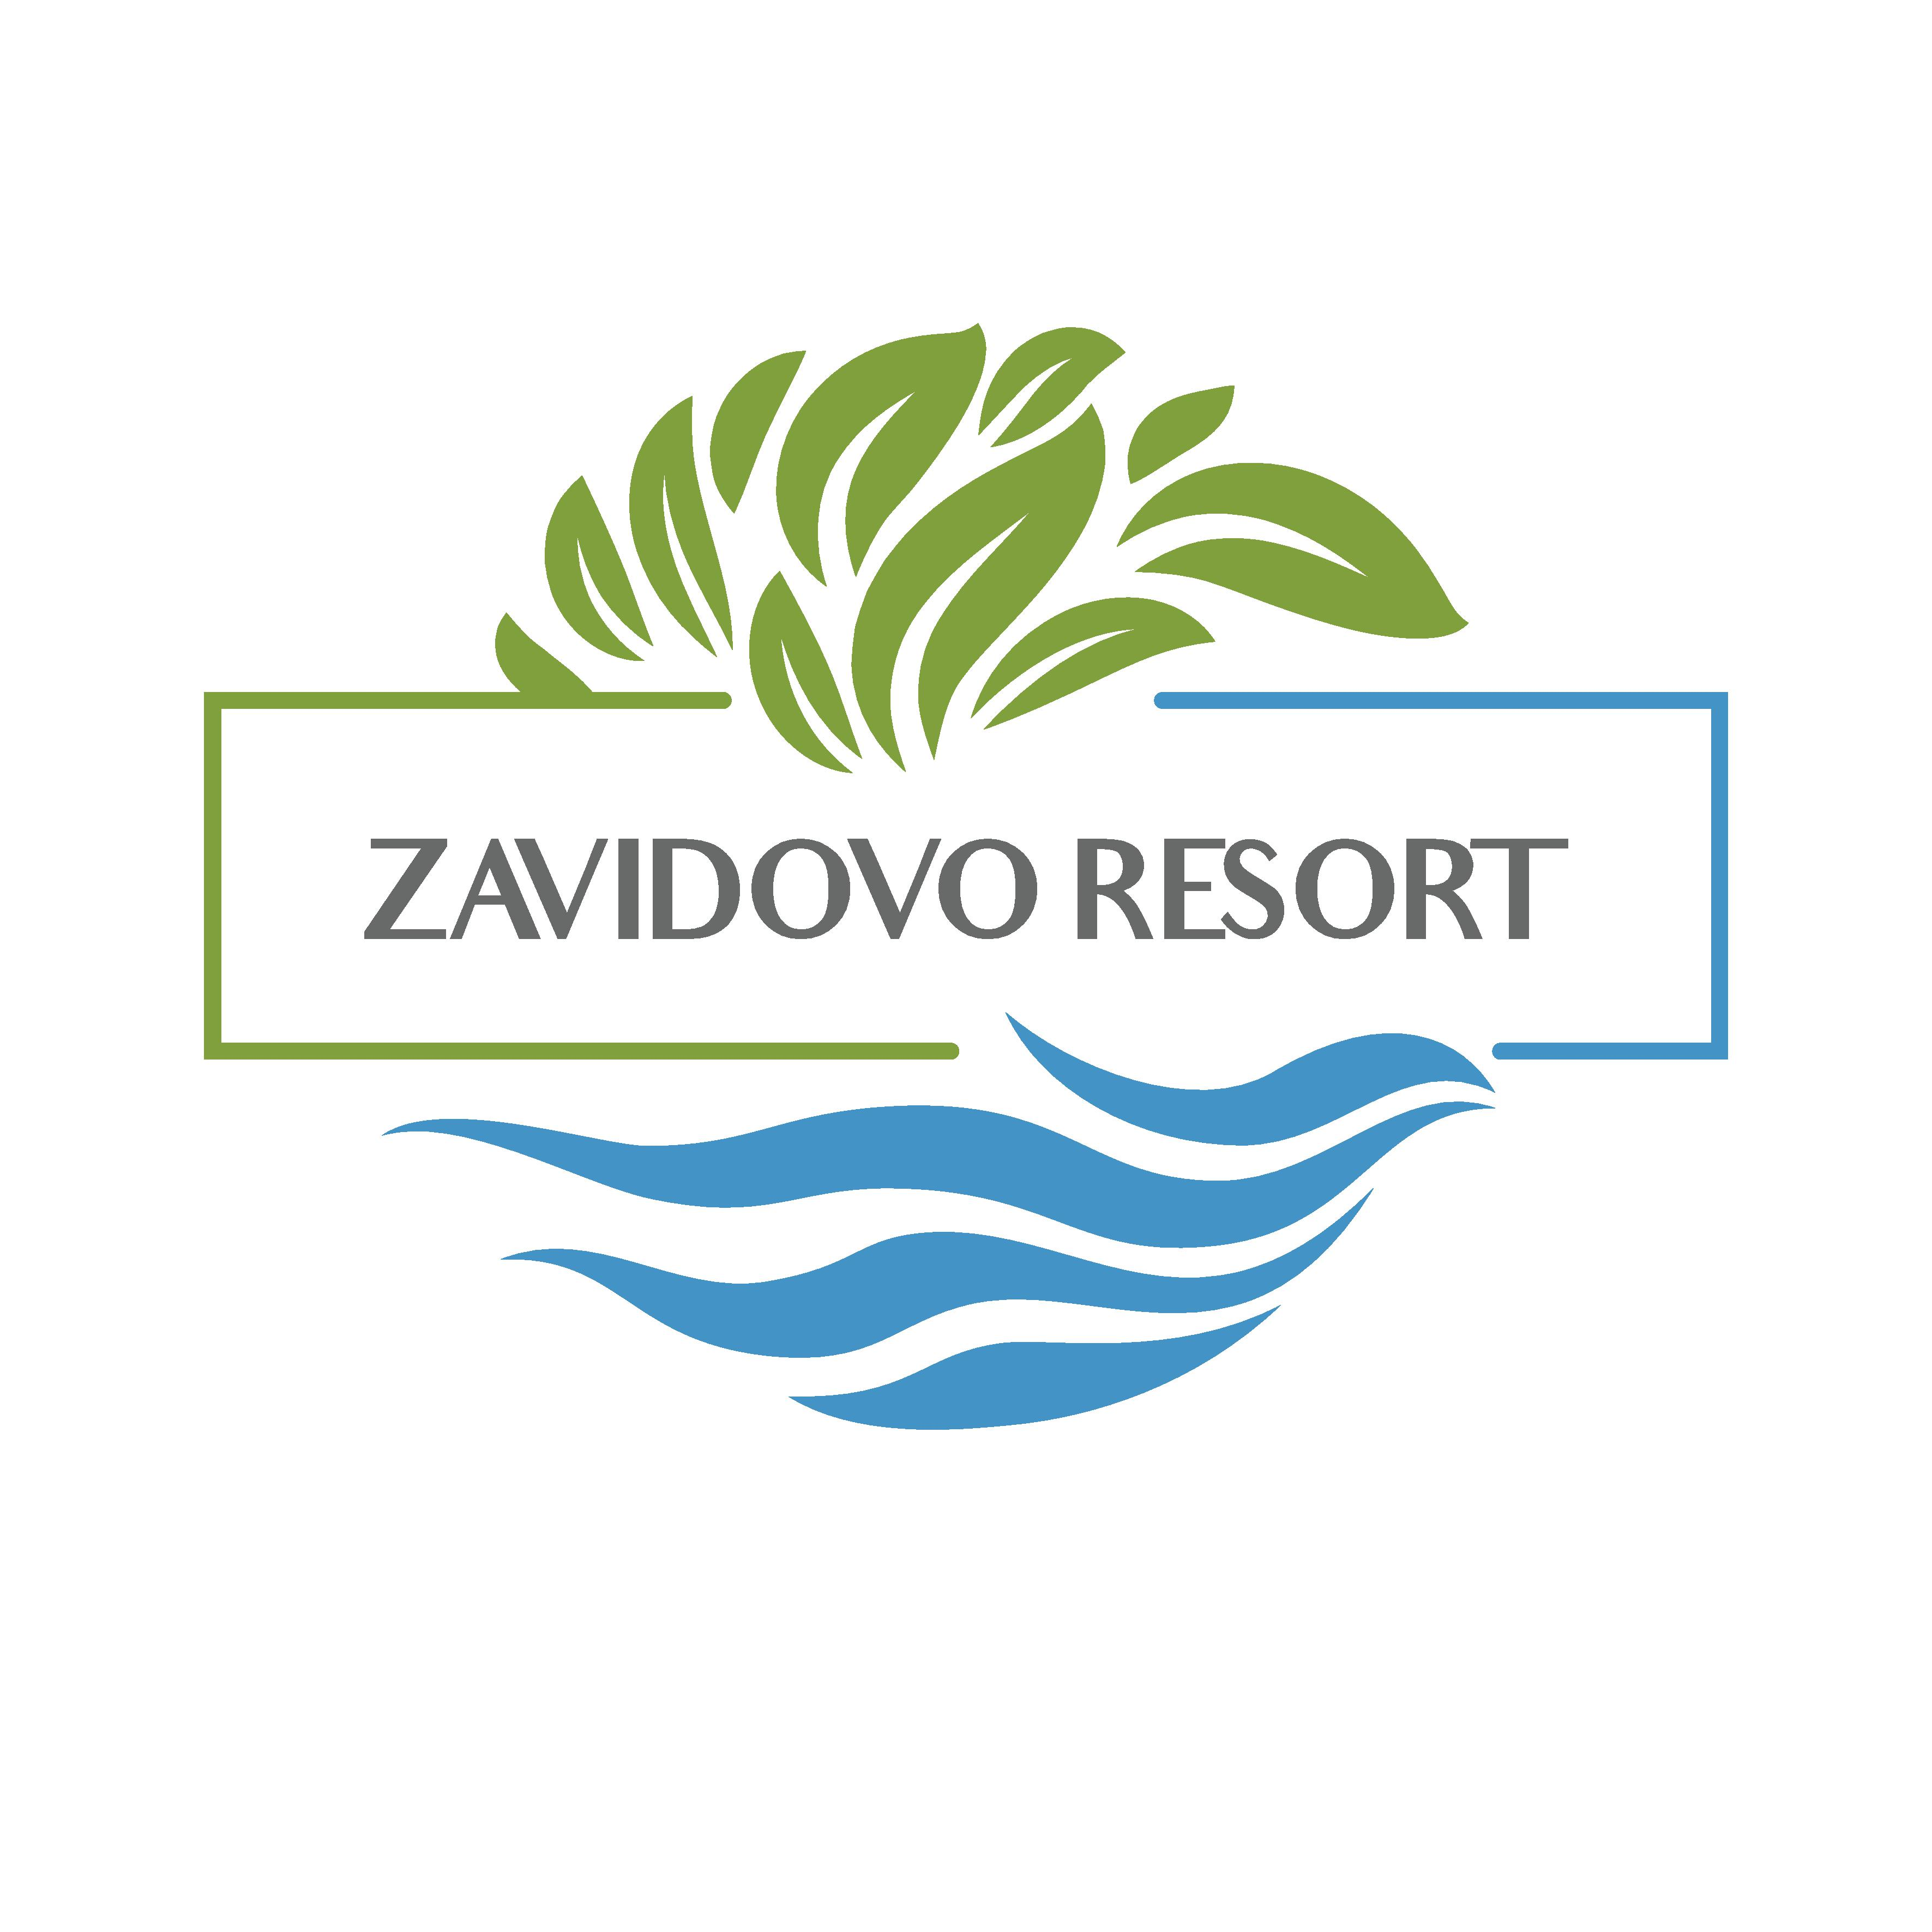 Country hotel Zavidovo Resort (Zavidovo Resort) (Загородный отель Zavidovo Resort (Завидово Резорт))